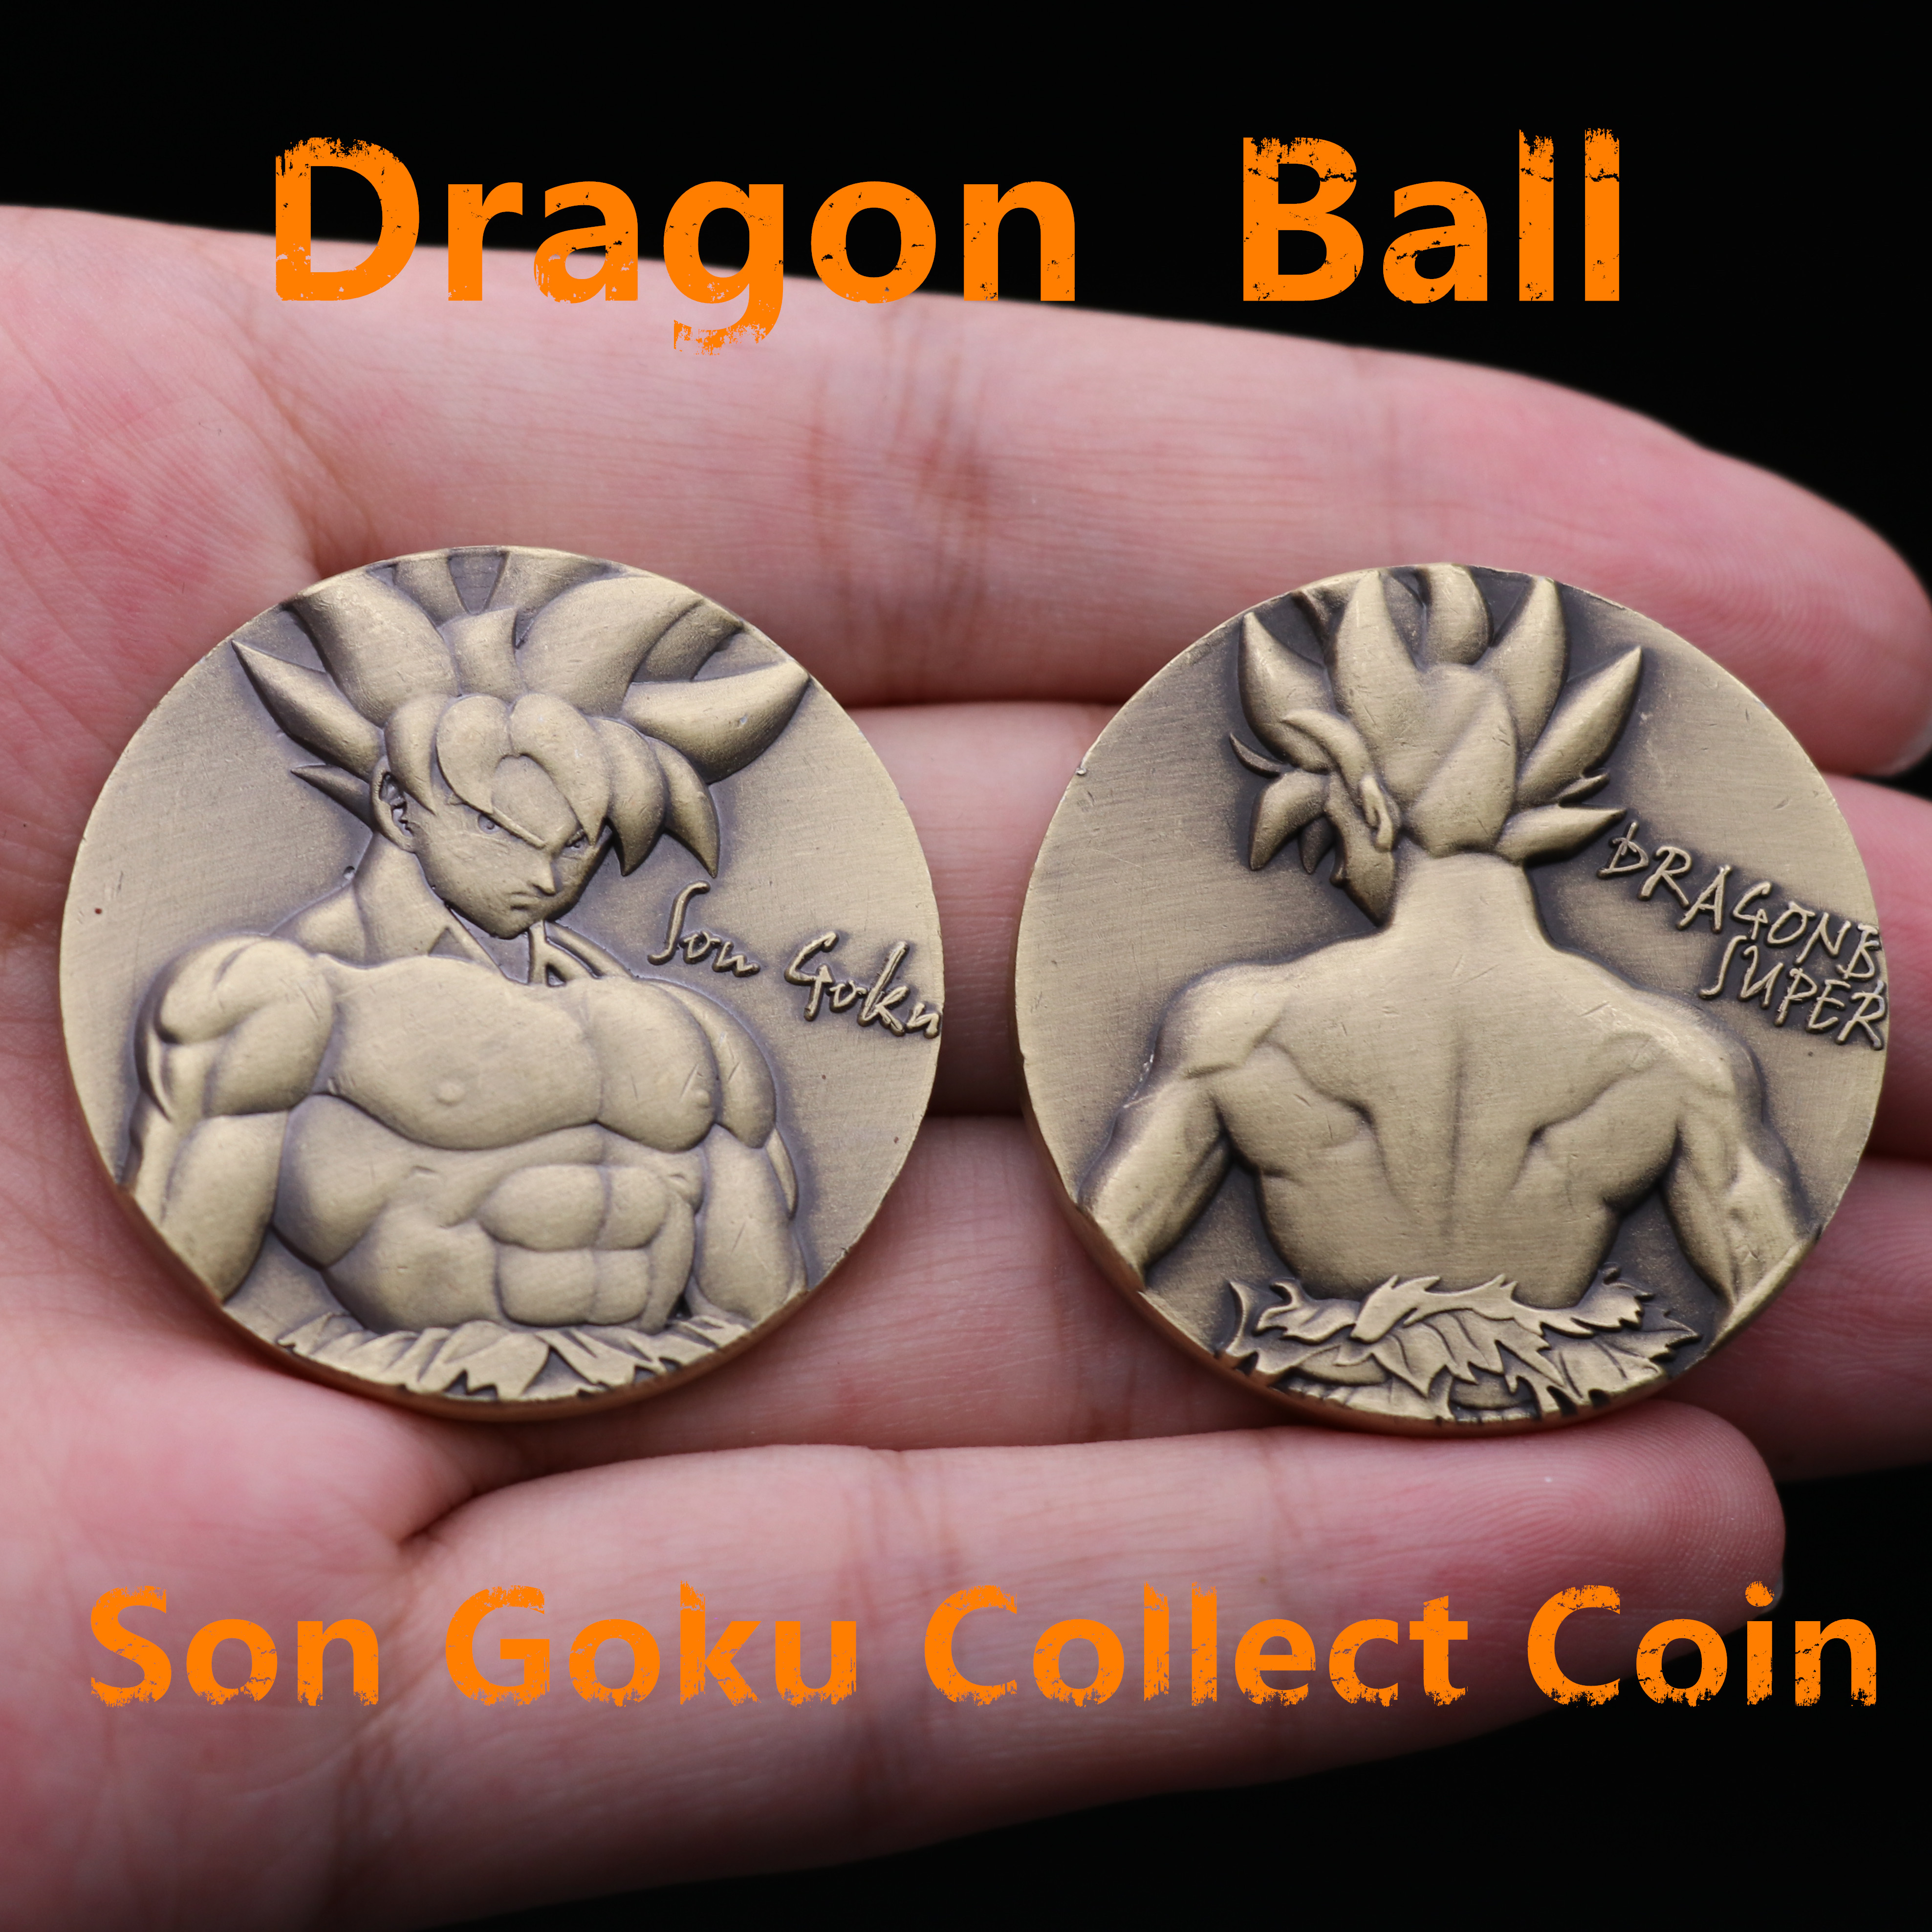 Dragonball Son Goku Collect Coin 3D Kakarotto Cosplay Accessories Badge Lucky Coin Decision Coin Funny Fancy Toy Christmas Gift